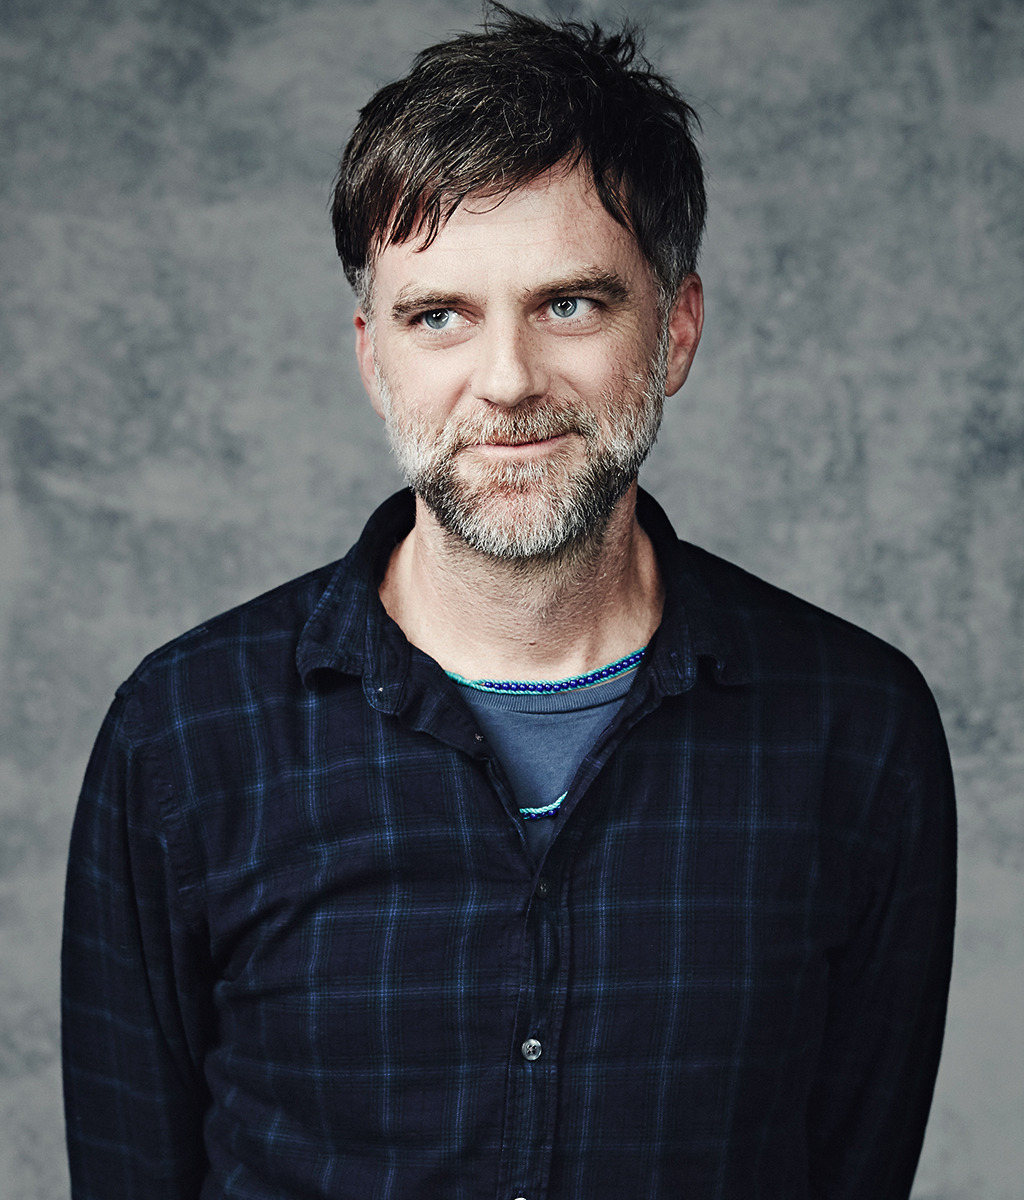 Paul Thomas Anderson Wiki: Net Worth, Movie, 'Phantom Thread', 'Boogie Nights' & Facts To Know